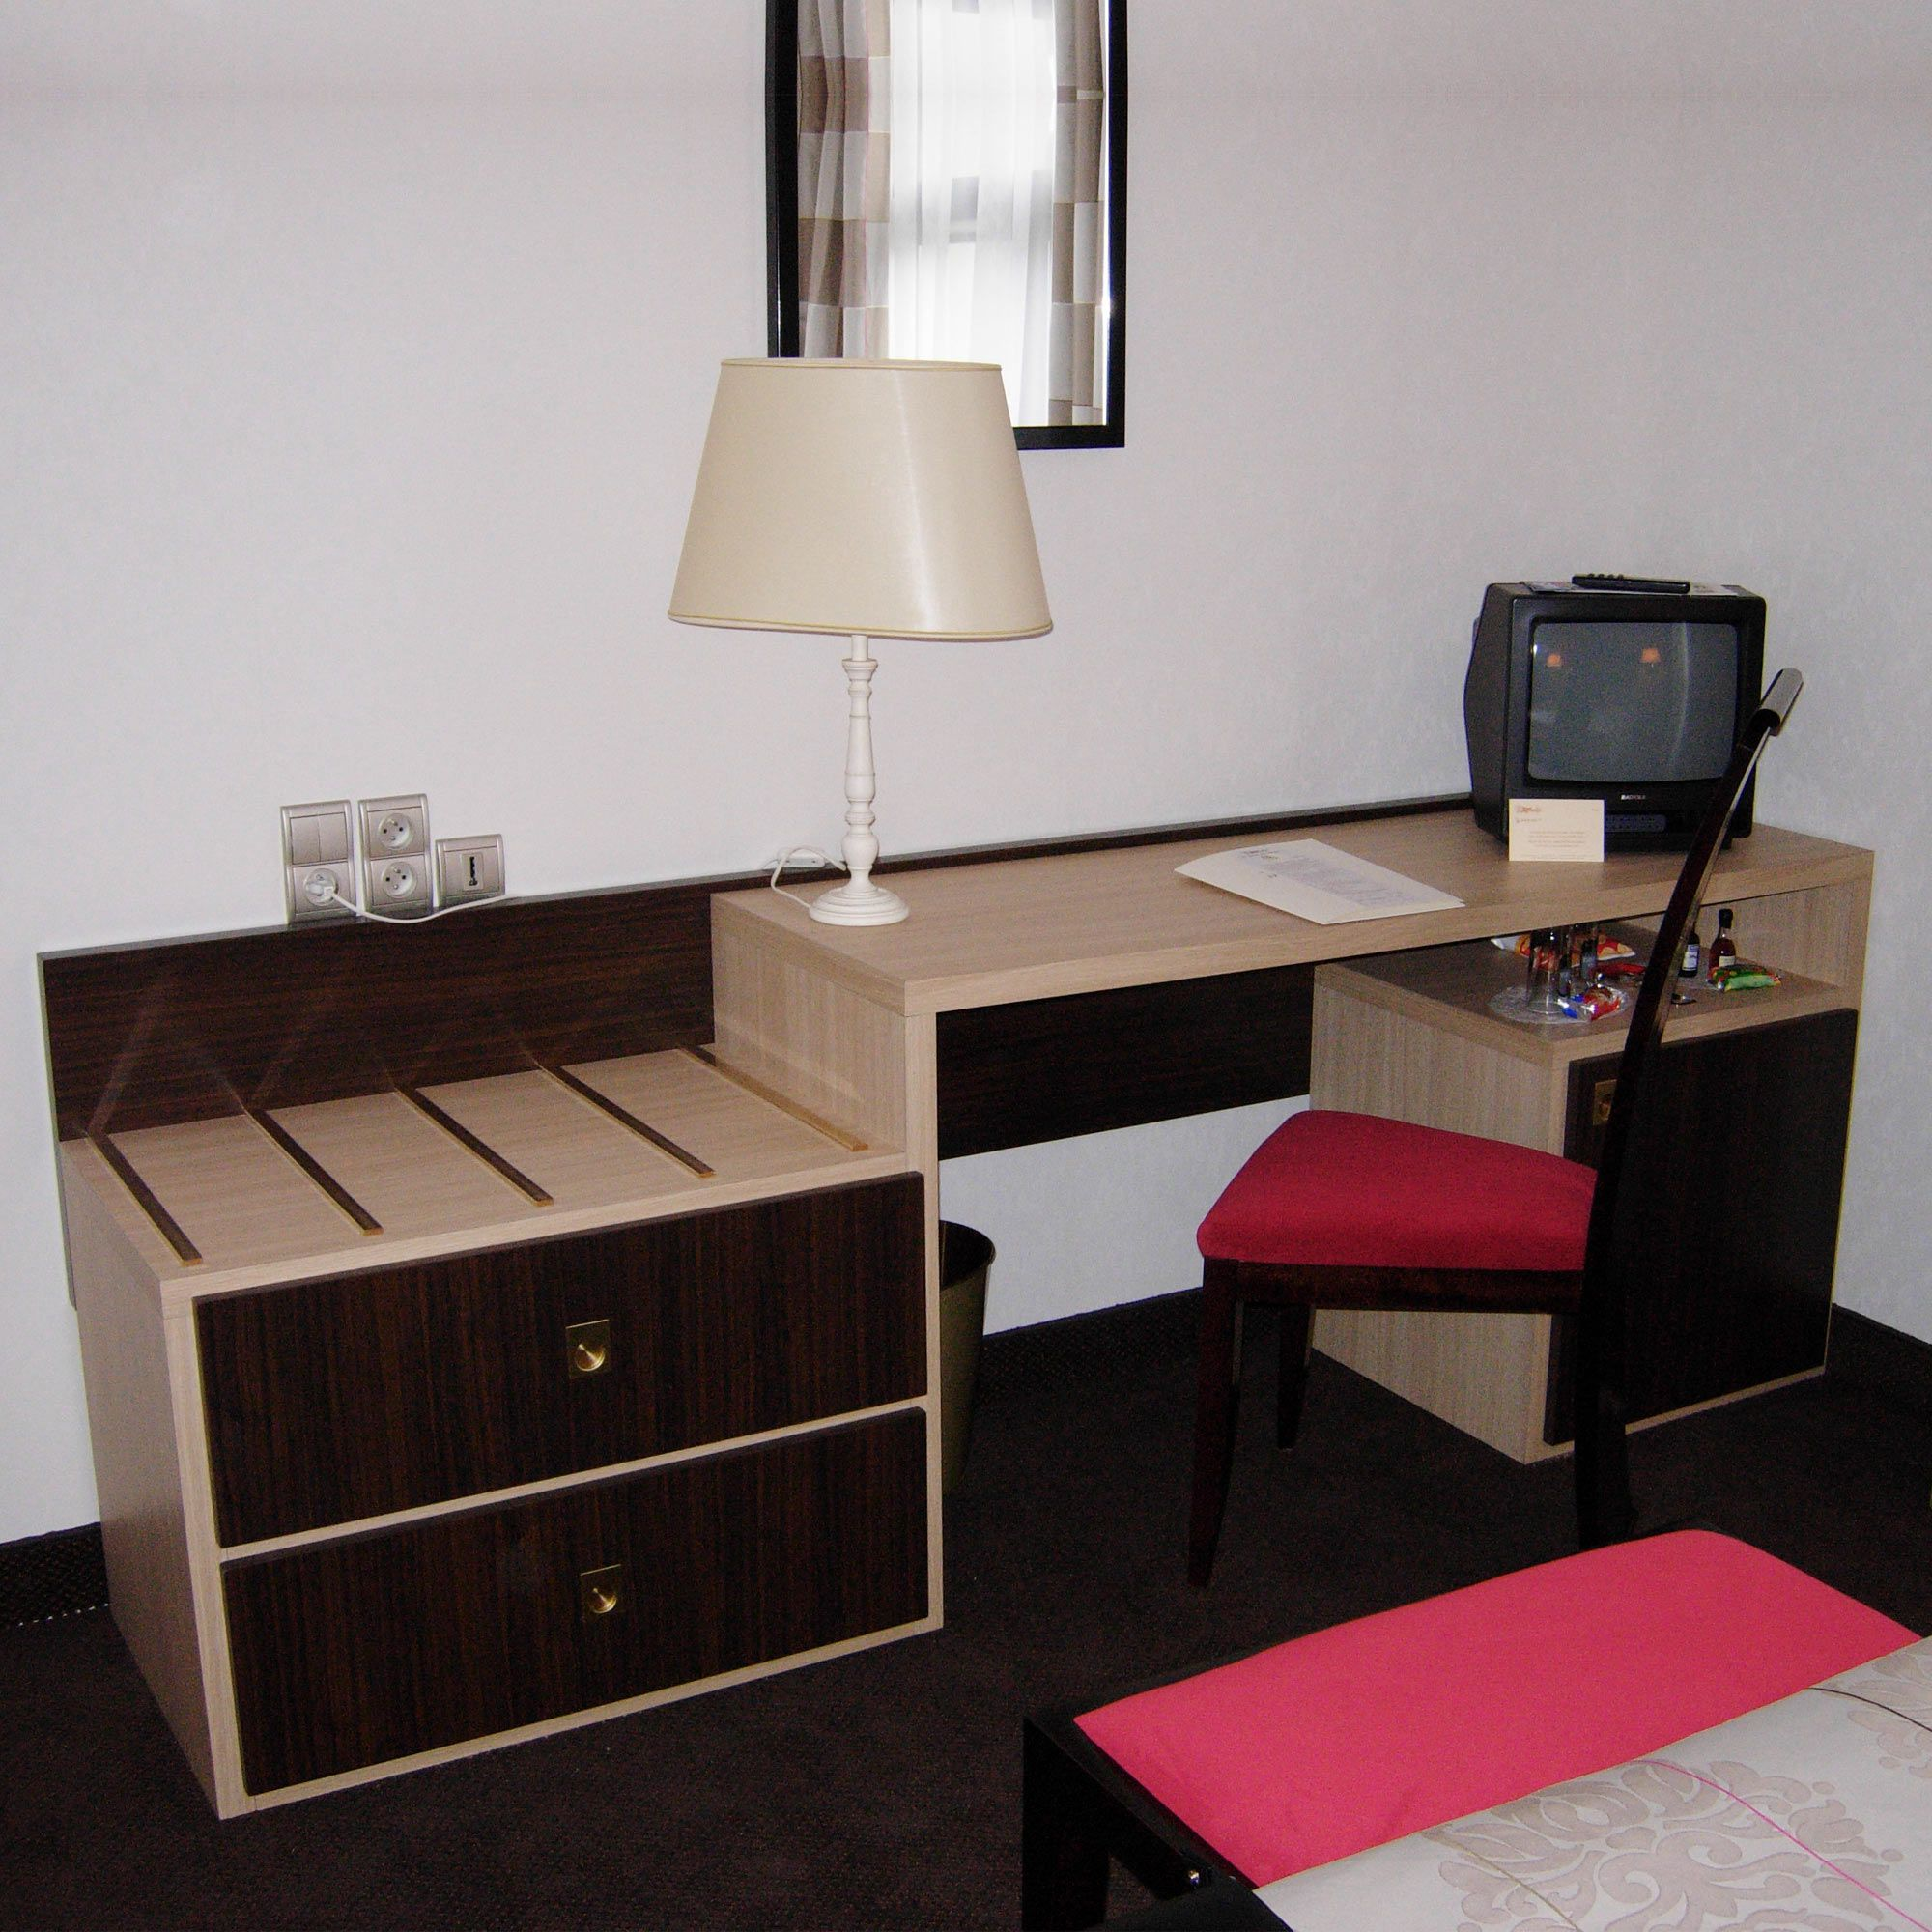 bureau porte bagage pour chambre d 39 h tel russy collinet. Black Bedroom Furniture Sets. Home Design Ideas